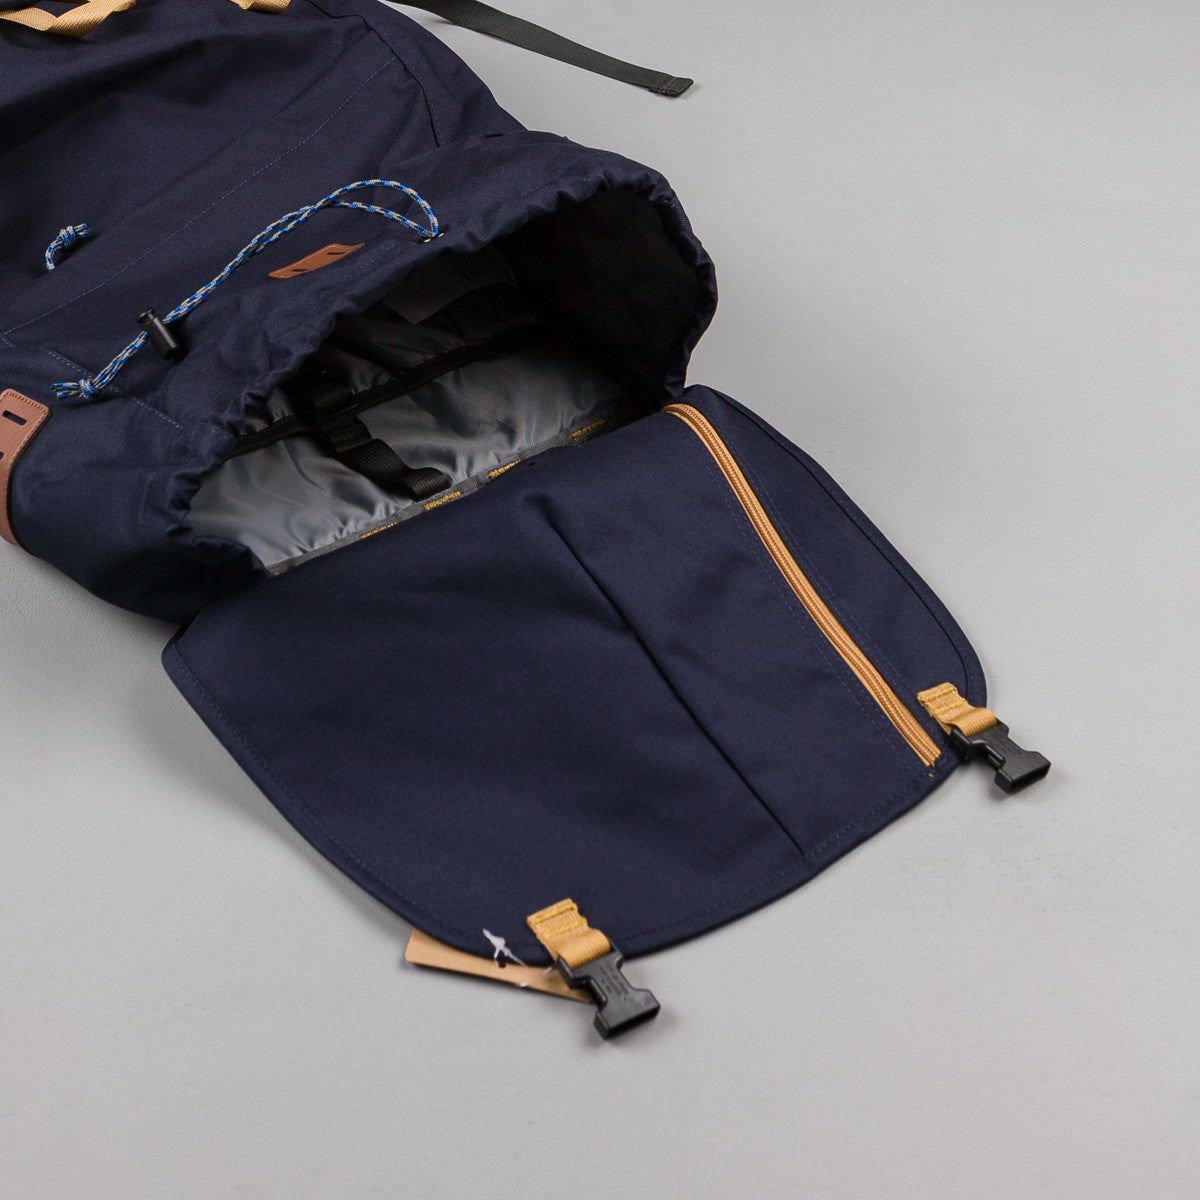 Patagonia Arbor Backpack - Navy Blue